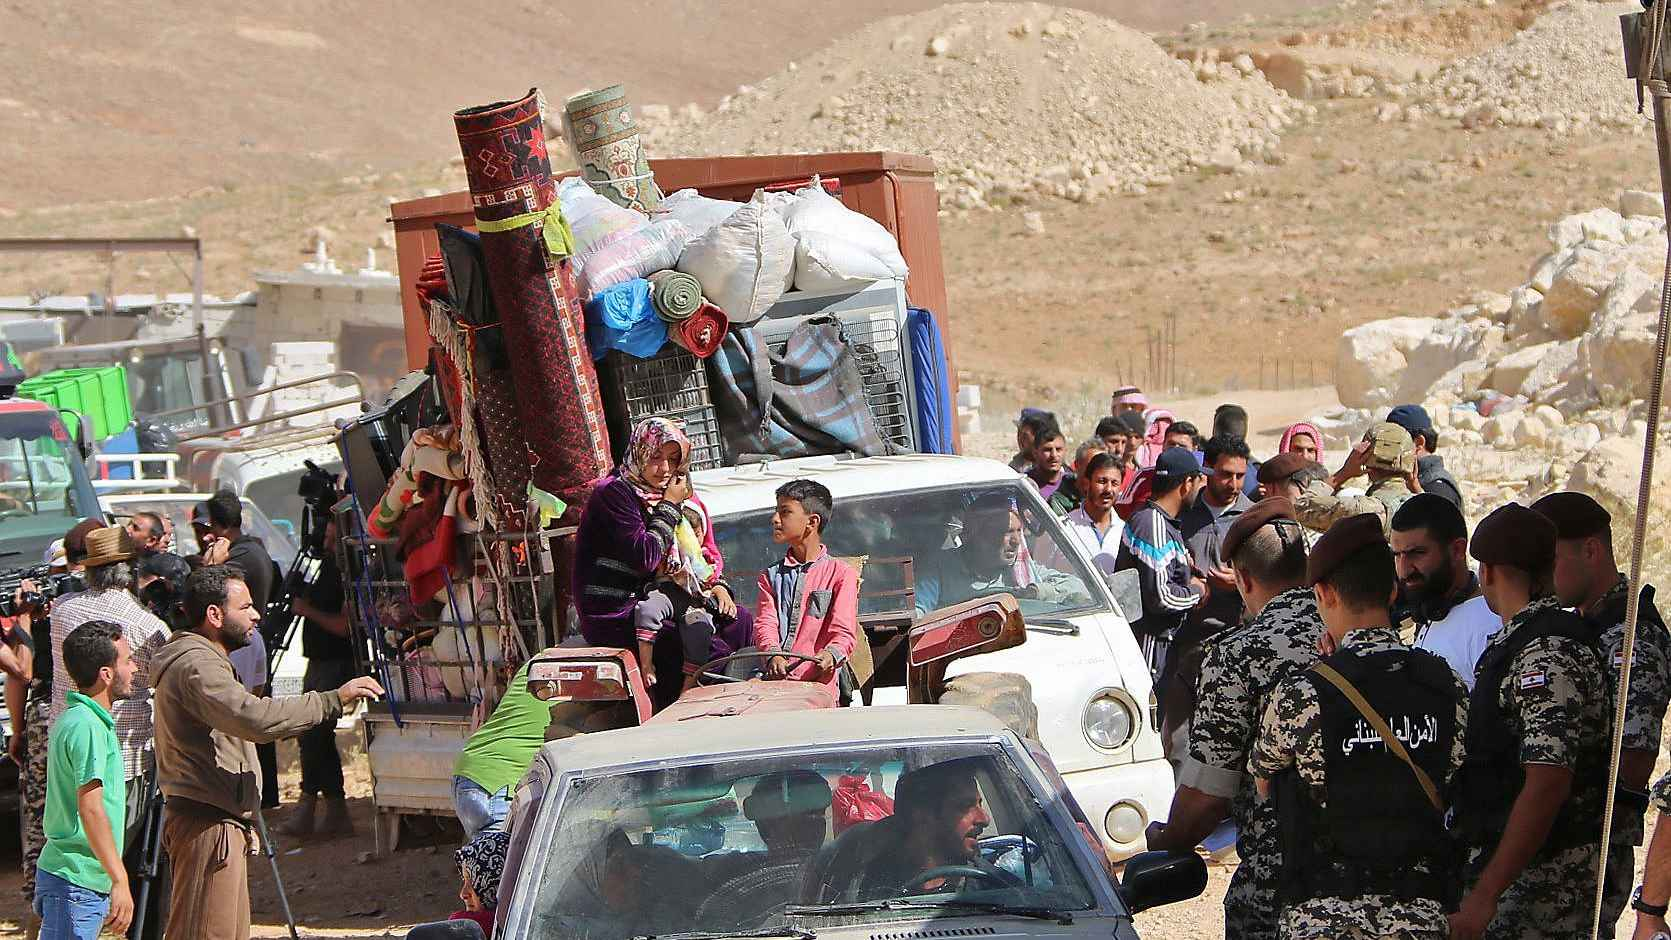 Lebanon arrests 27 Syrians over illegal entry